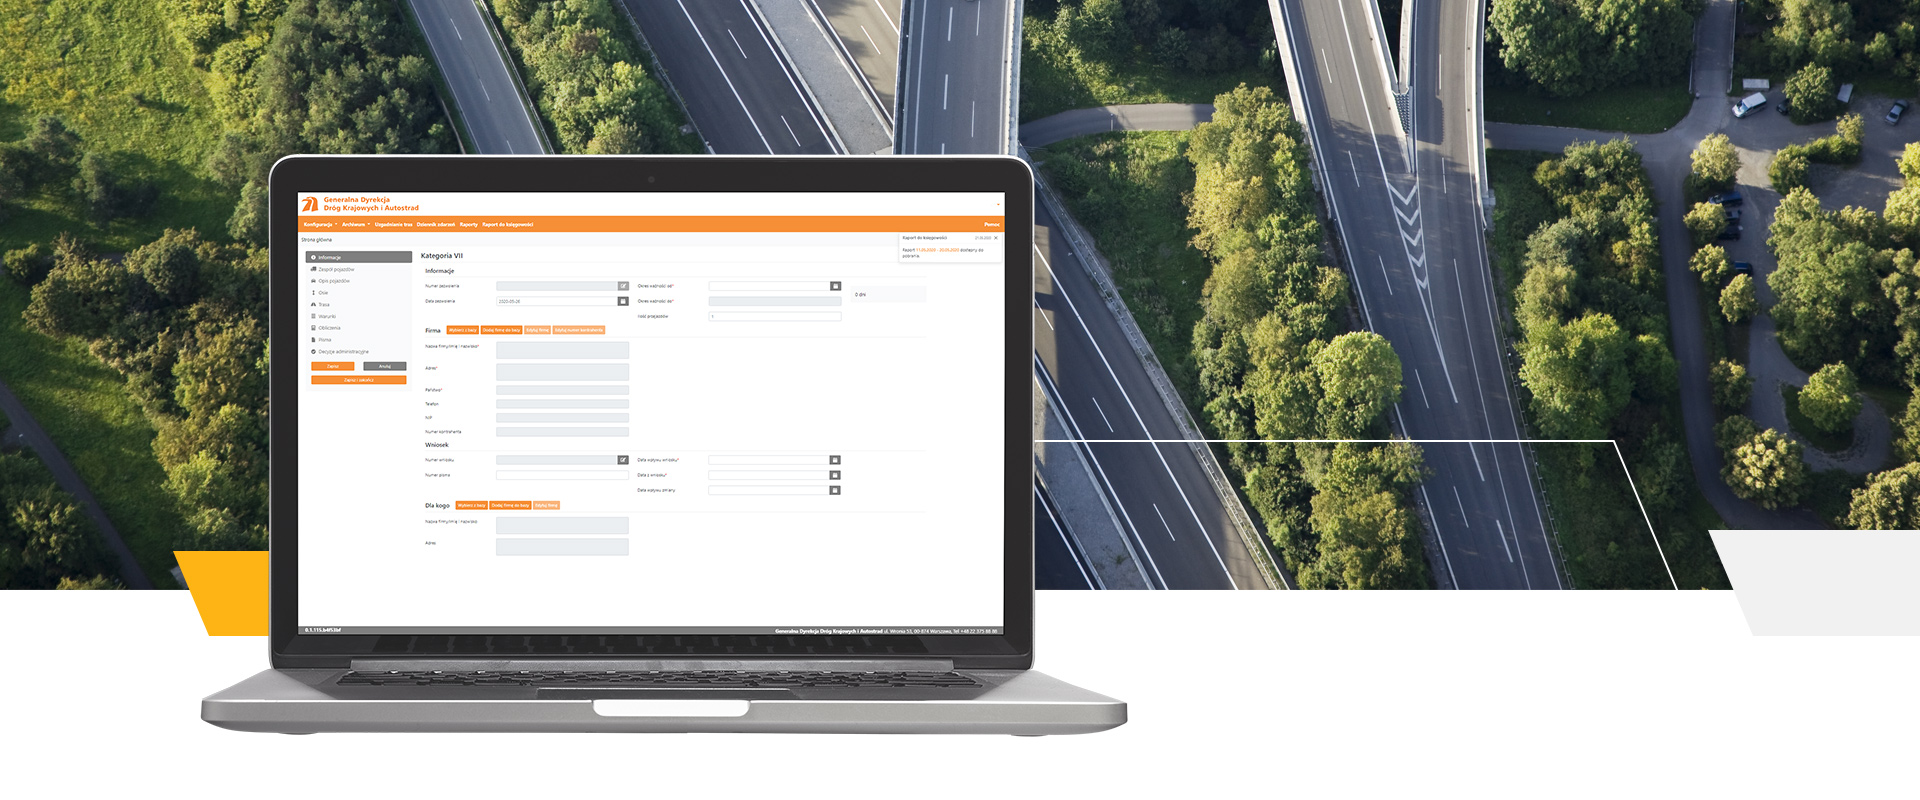 The software supporting GDDKiA with issuing permissions for transit of the off-specification transport